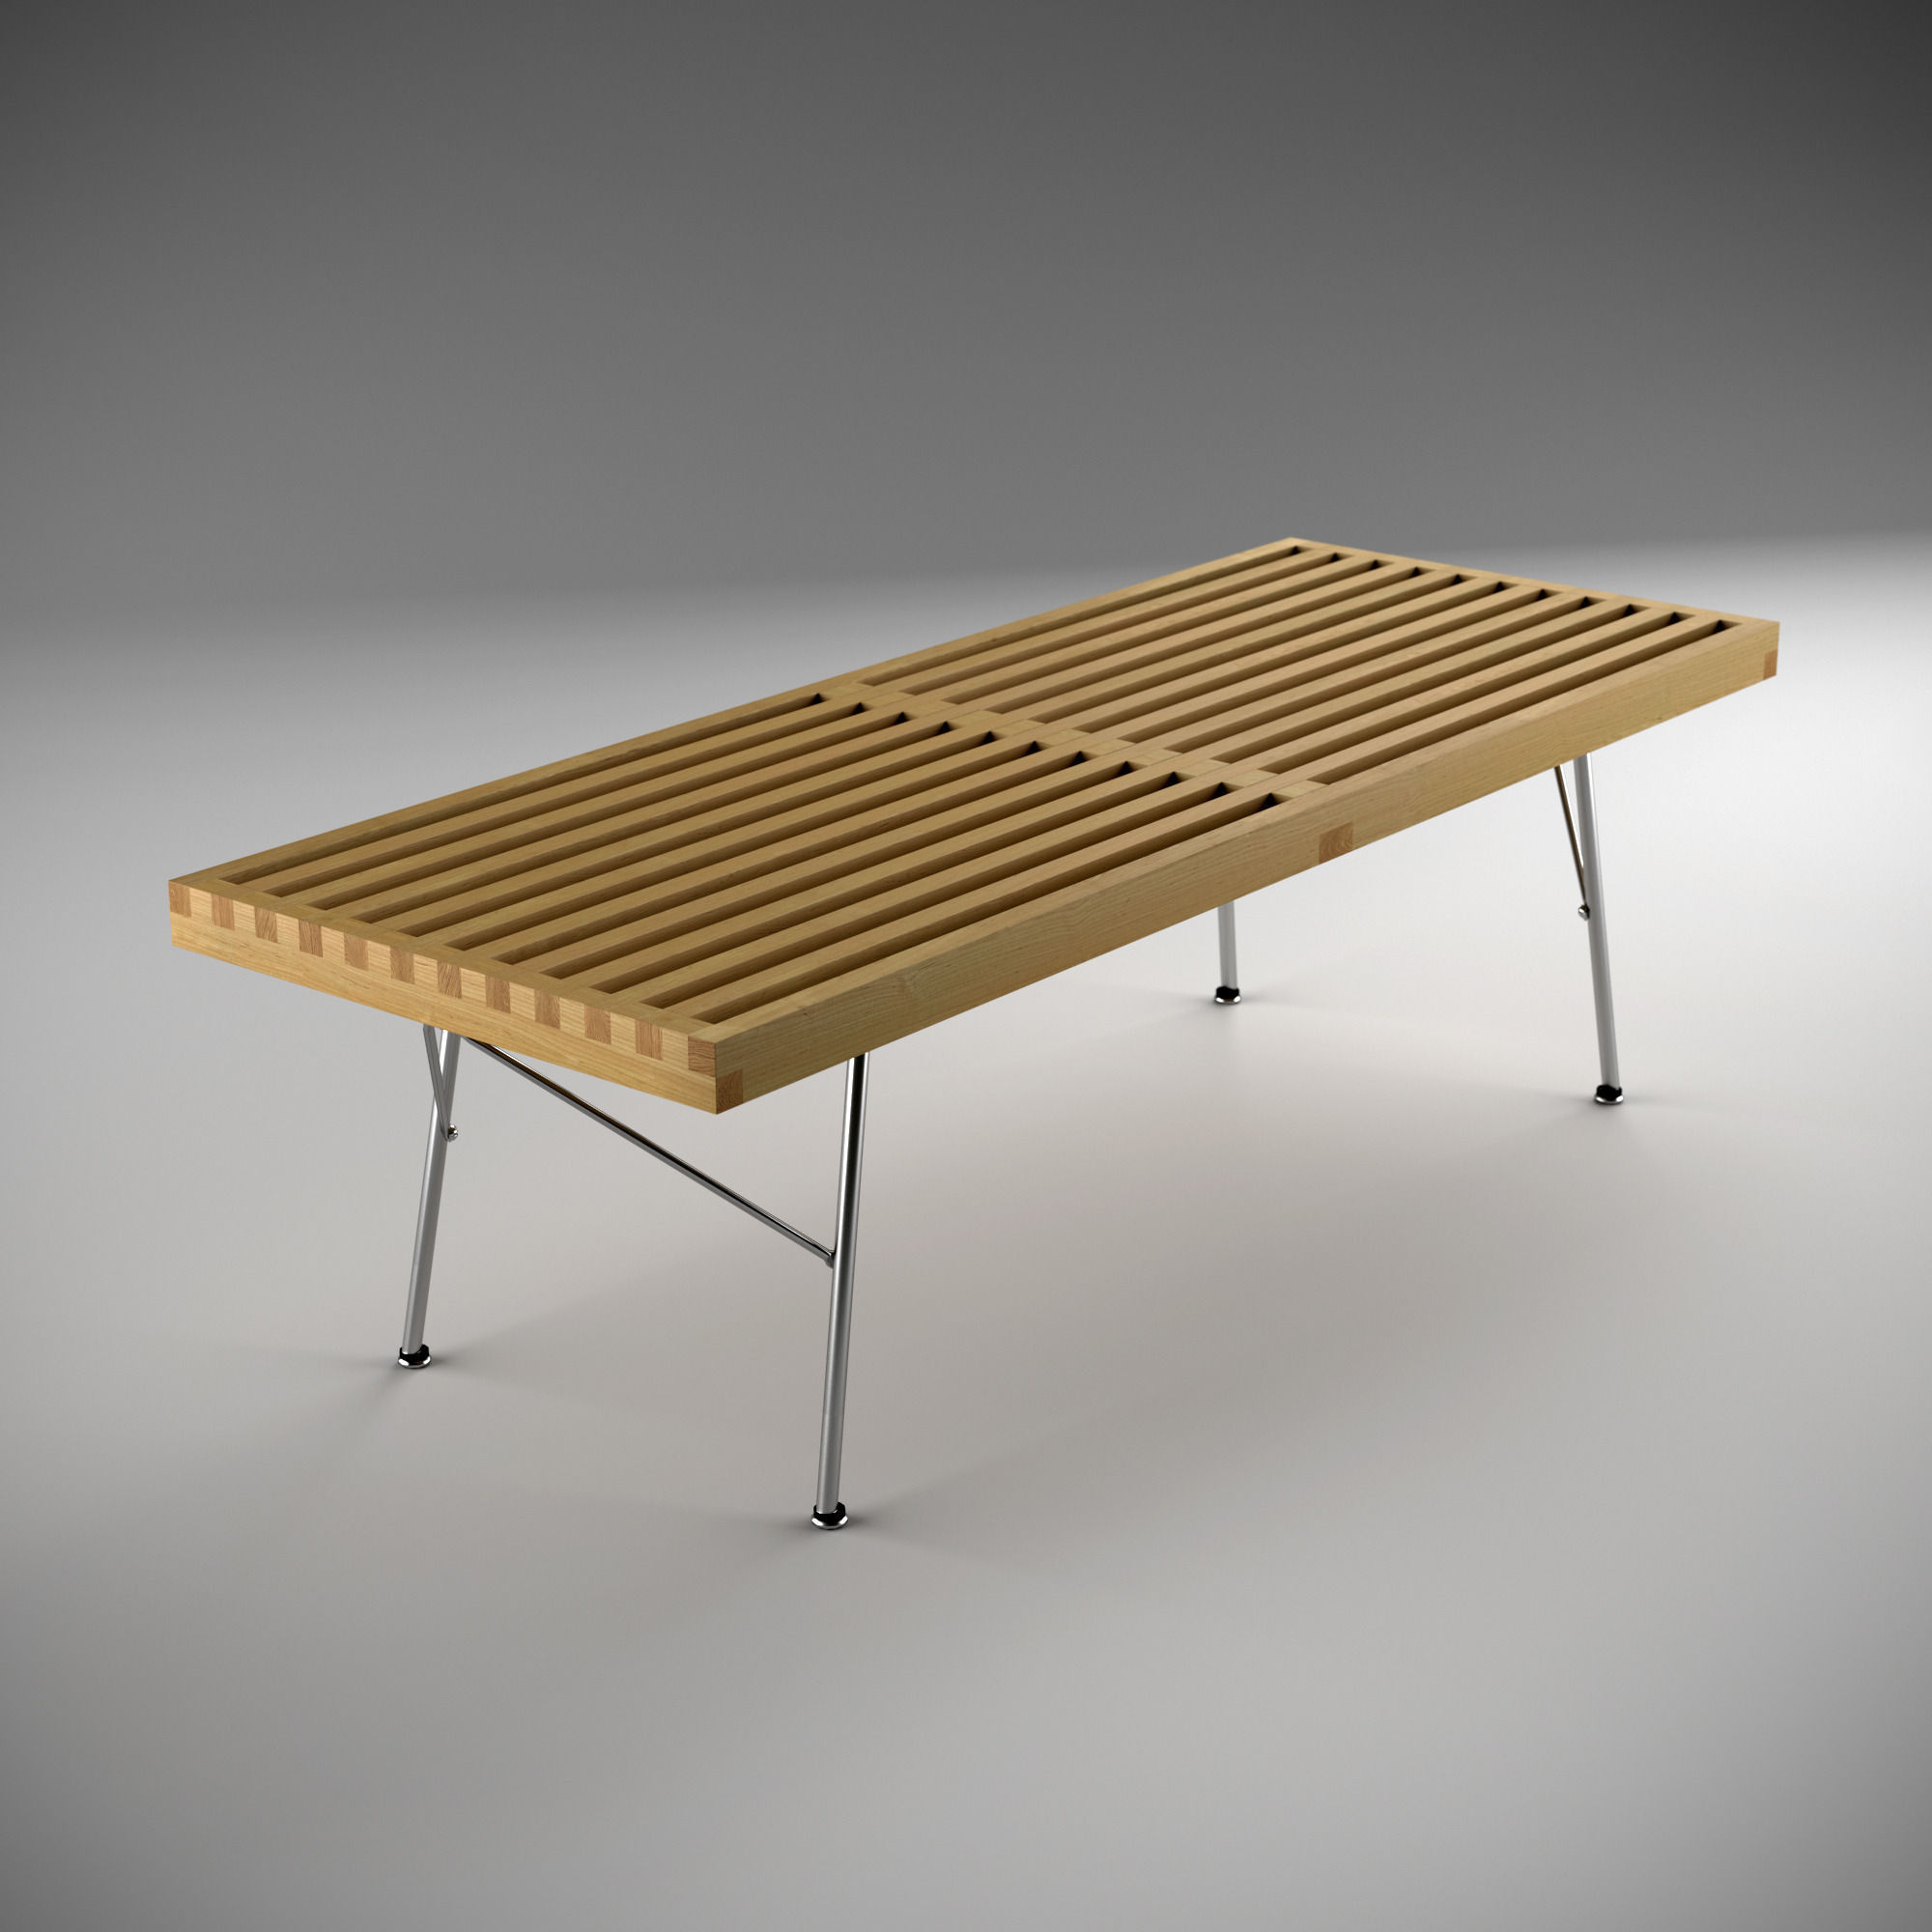 dining table metal seater garden image set picid type bench is undef itm polywood src color benches outdoor brown sa loading